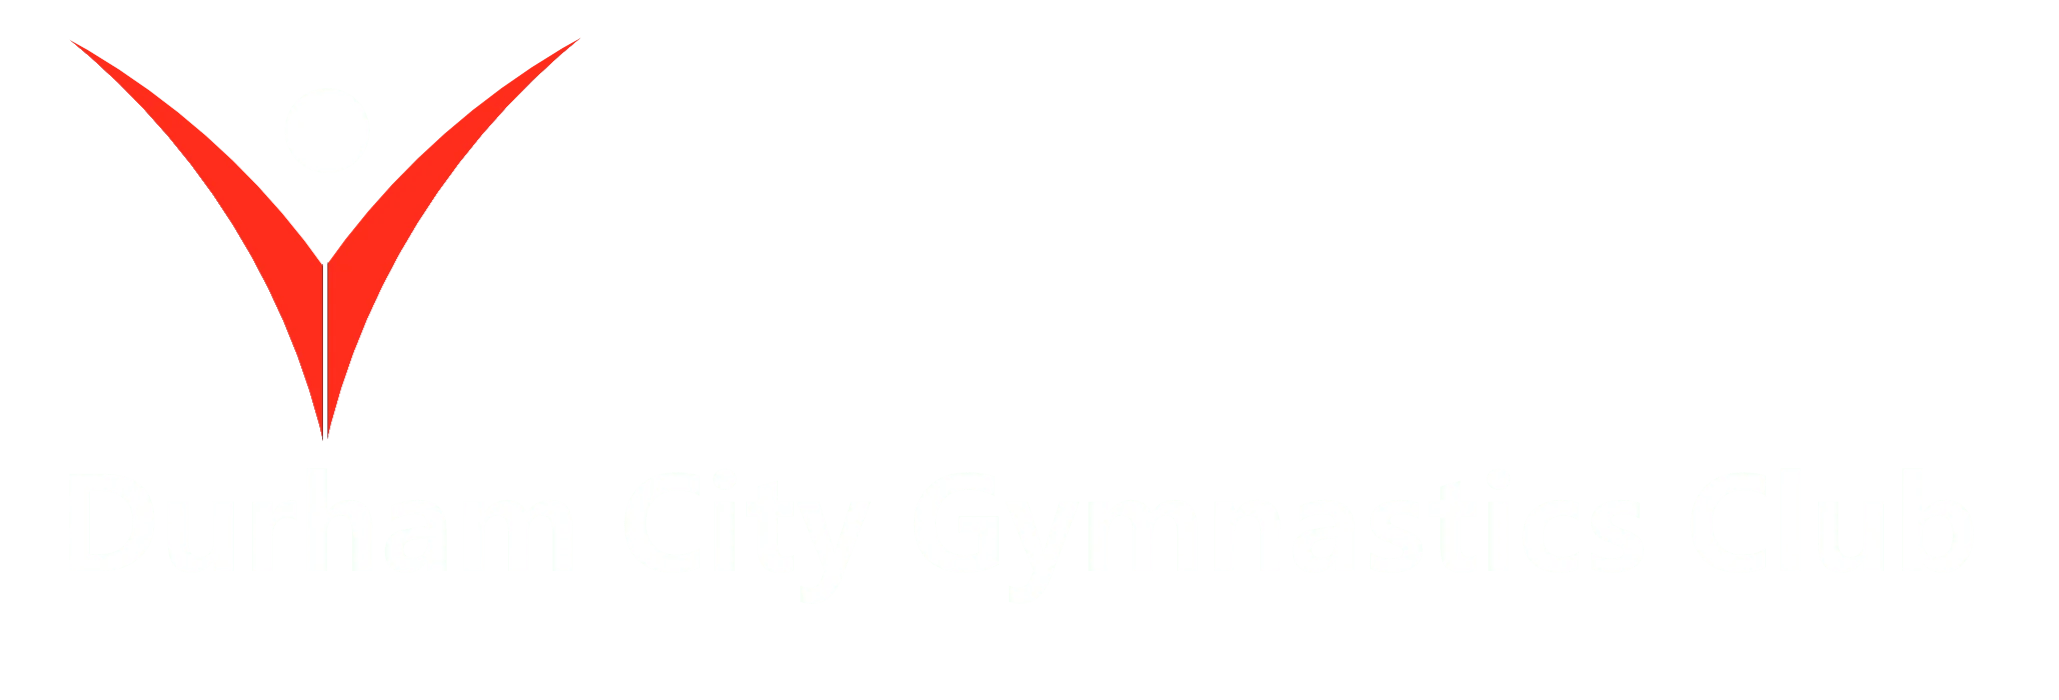 Durham City Gymnastics Club